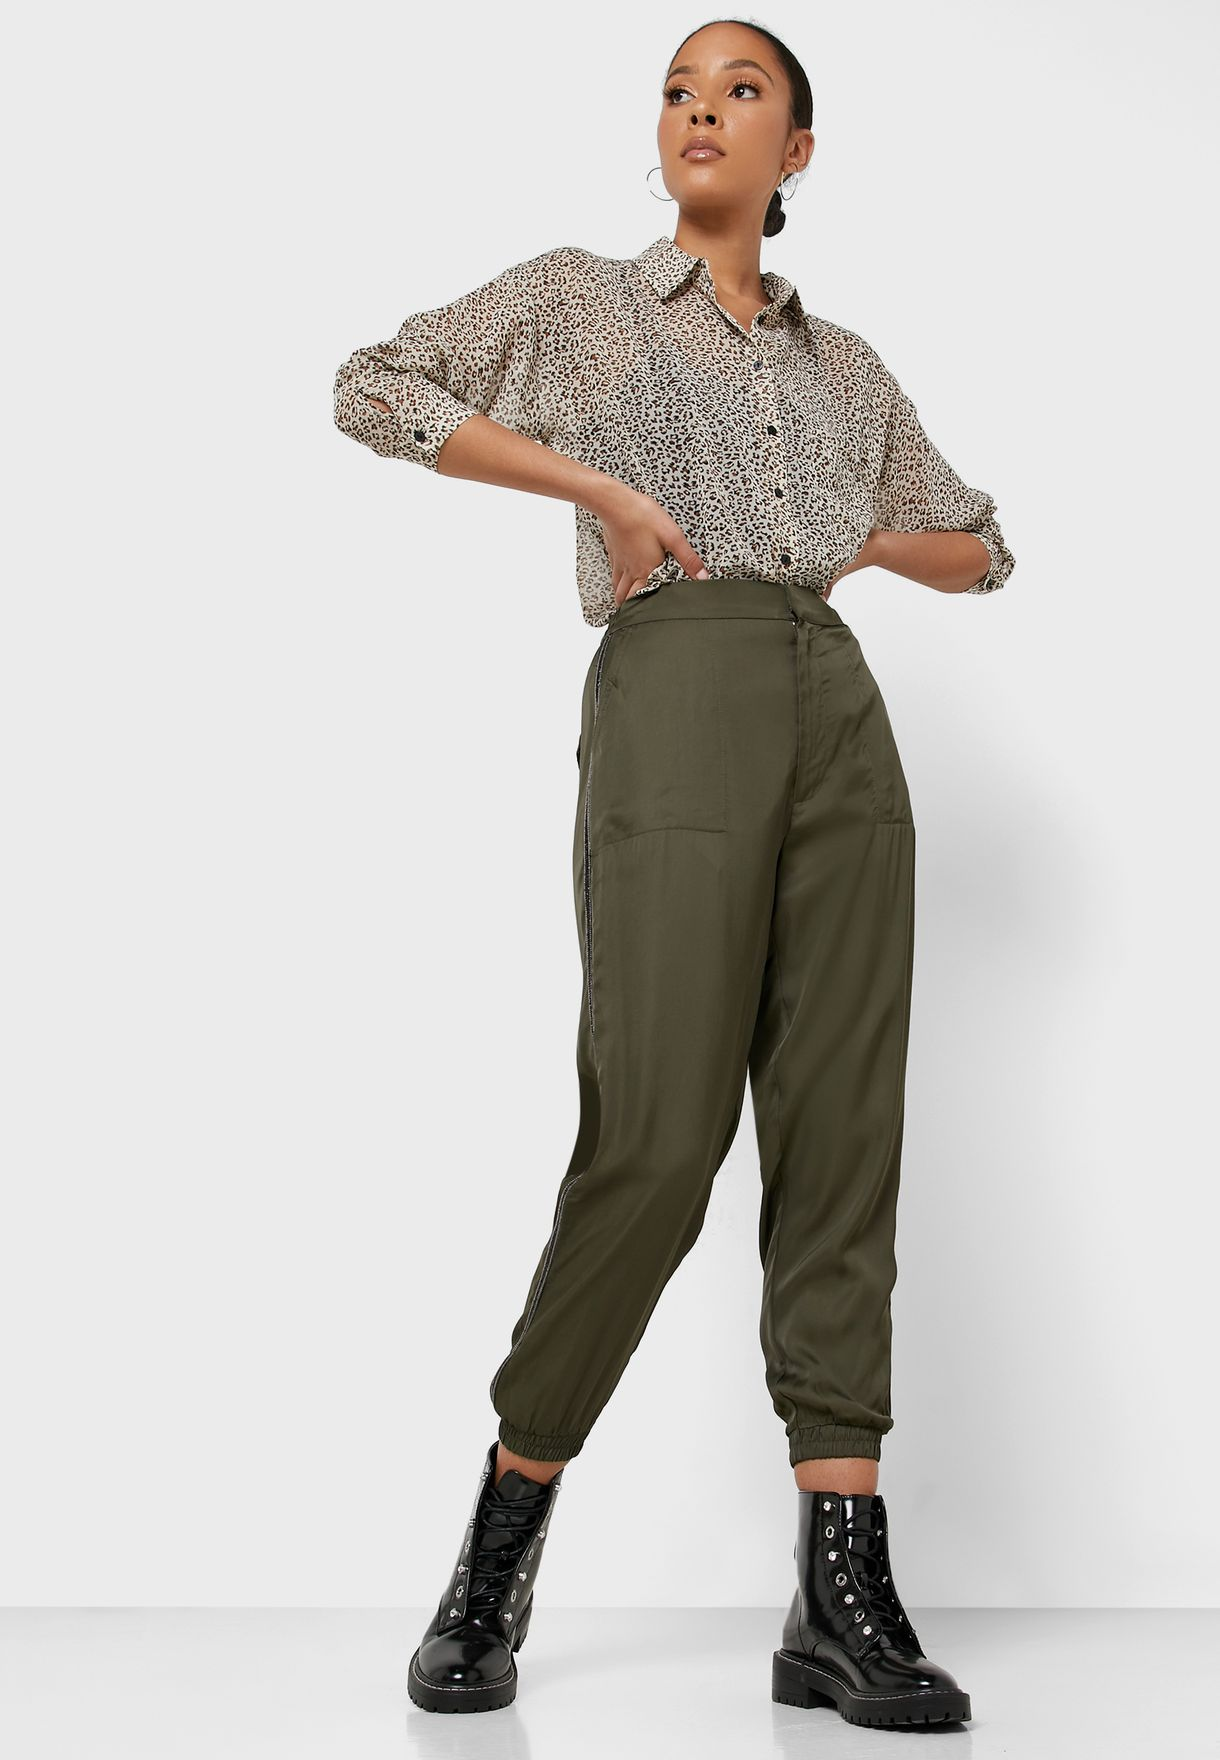 High Waist Cuffed Pants